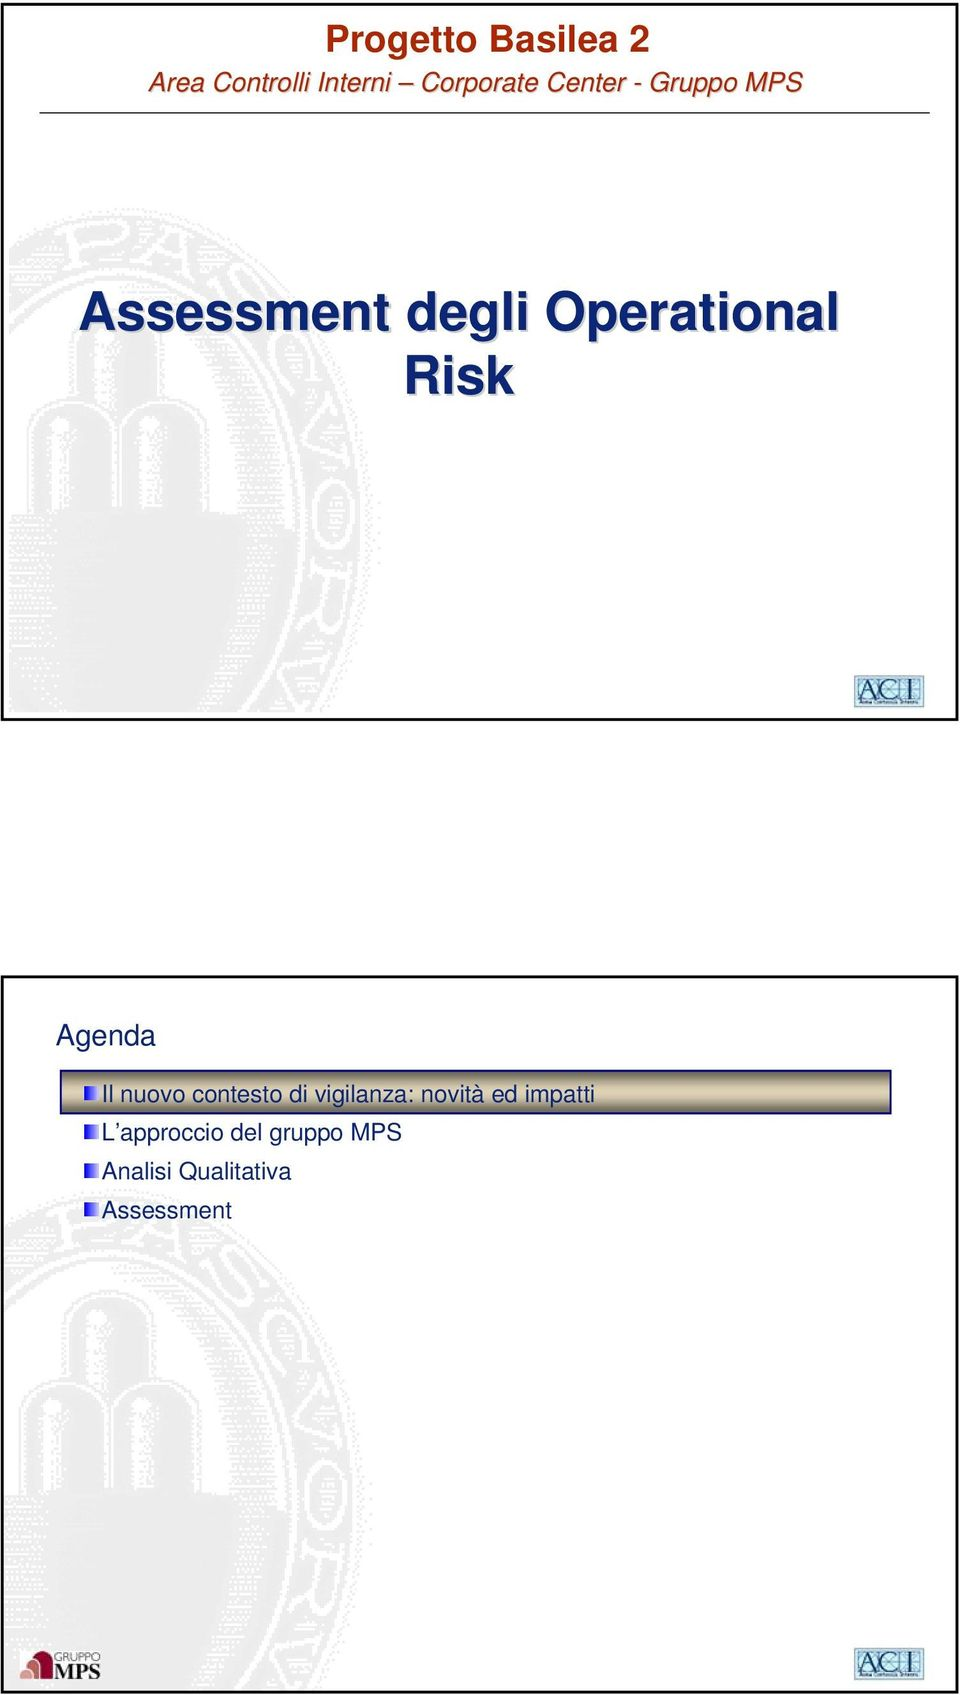 Risk 2003 Firm Name/Legal Entity Agenda Il nuovo